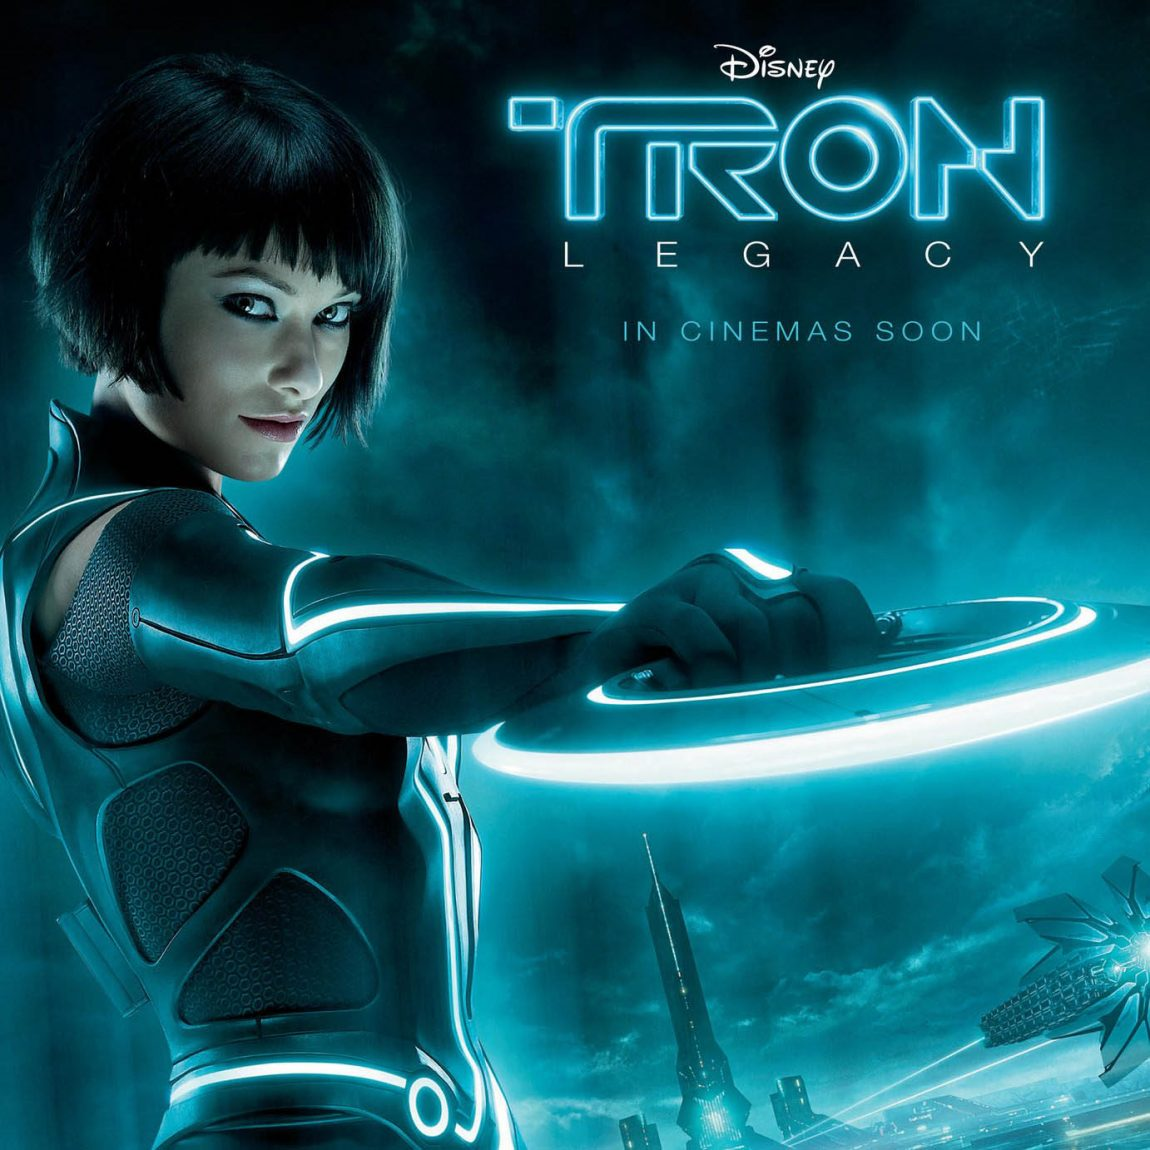 TRON Legacy: Quorra poster with intense cyan blue colors